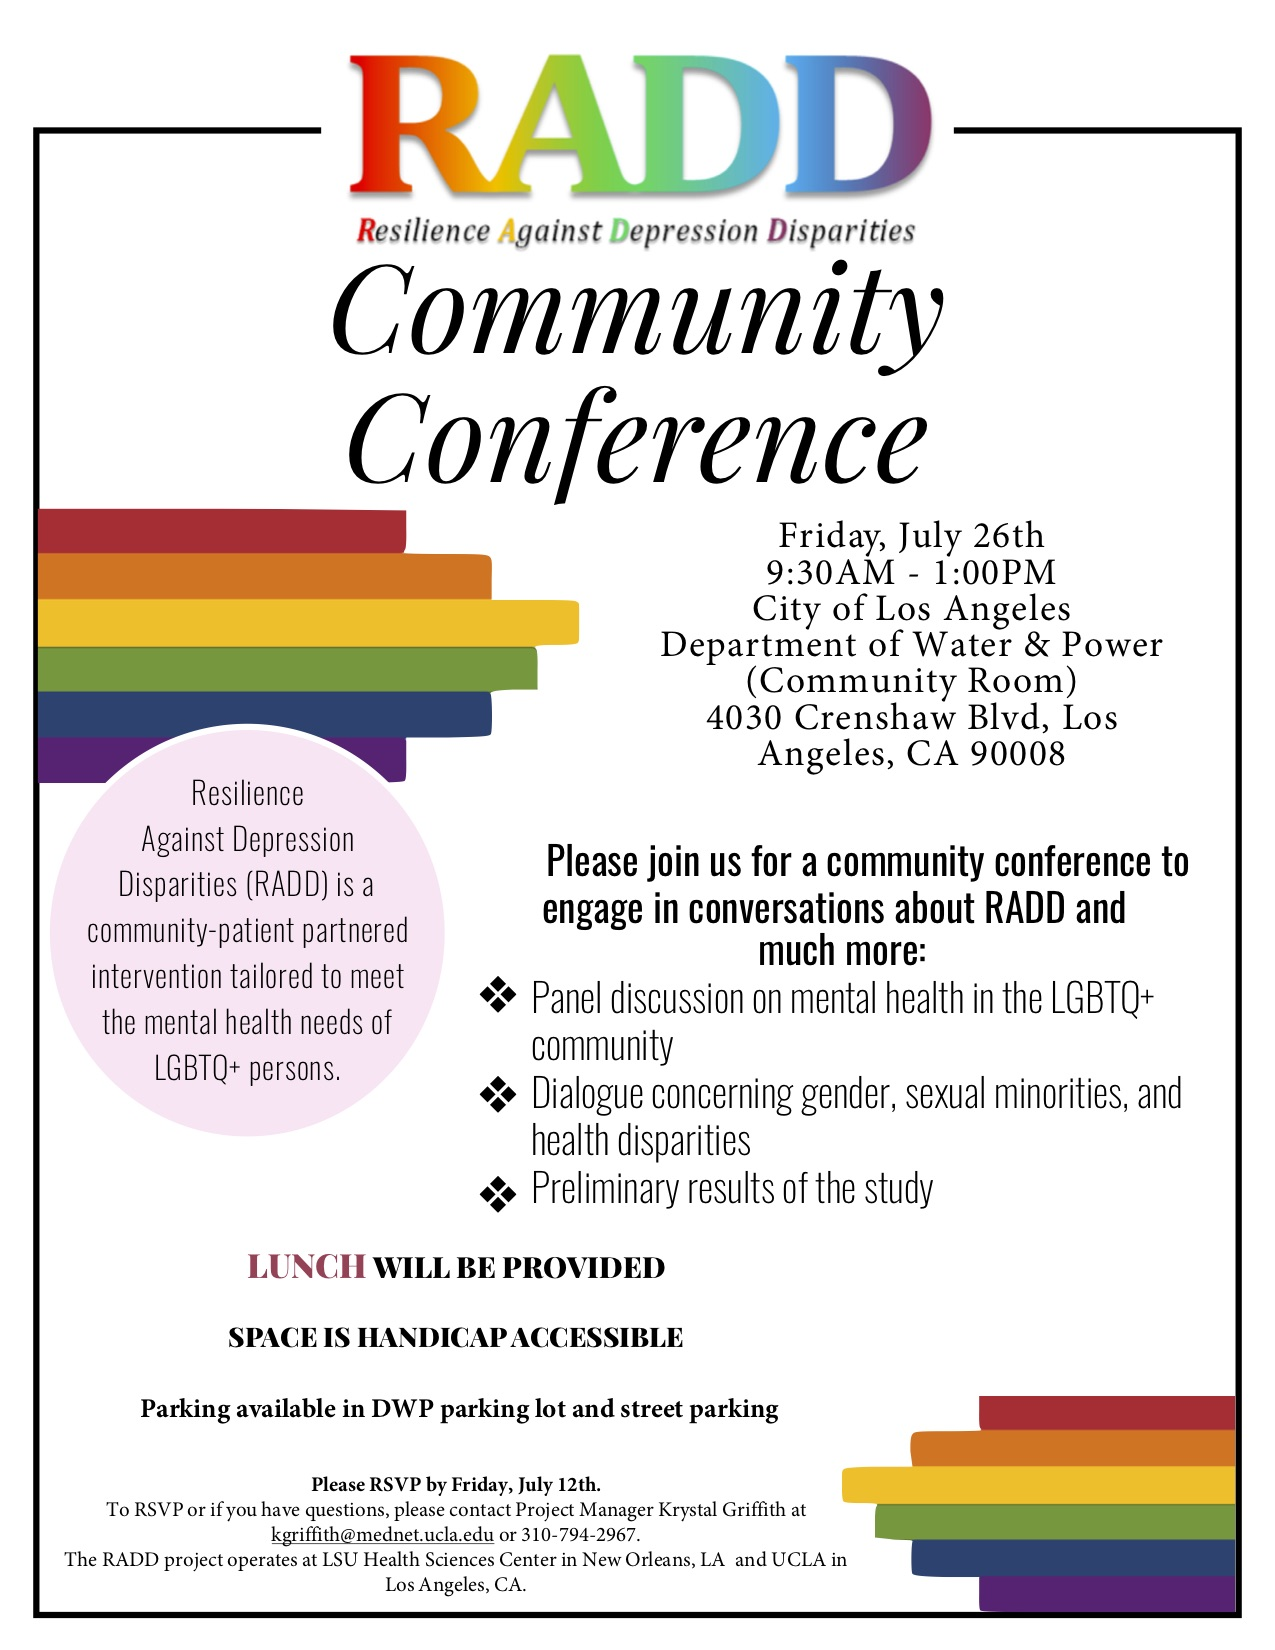 RADD_Community Conference Flyer - Los Angeles 2019.jpg